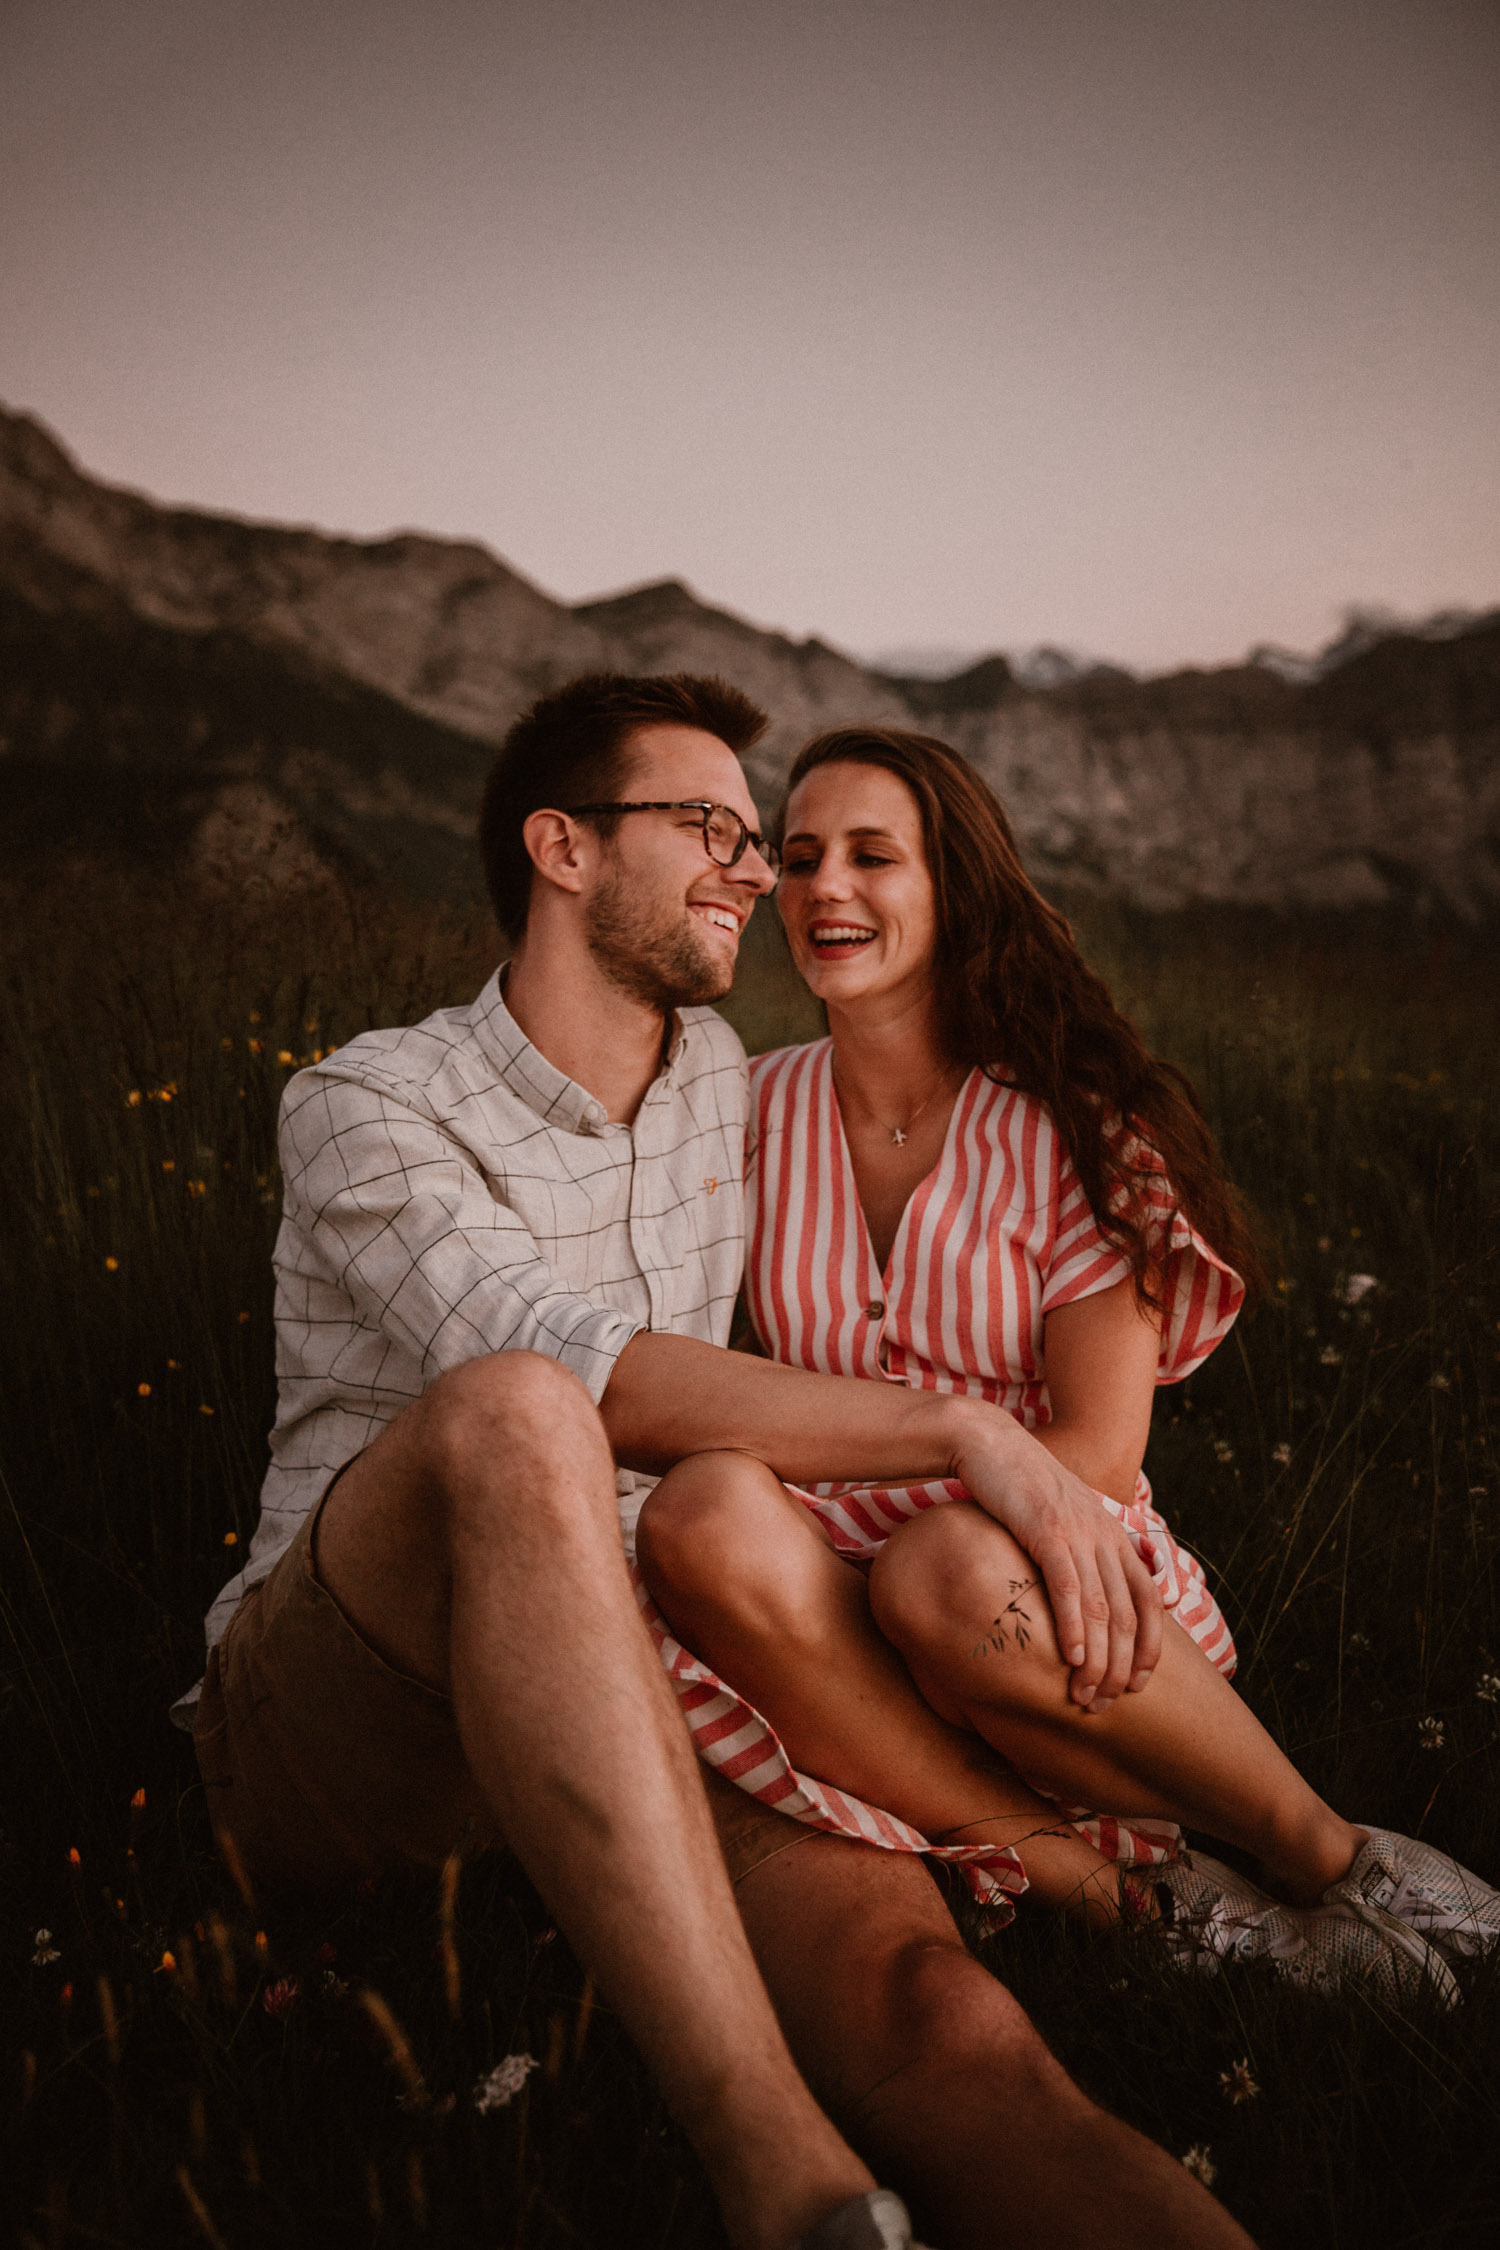 Couple Shoot in Swiss Mountains couple wedding photographer Switzerland unposed natural beautiful elopement